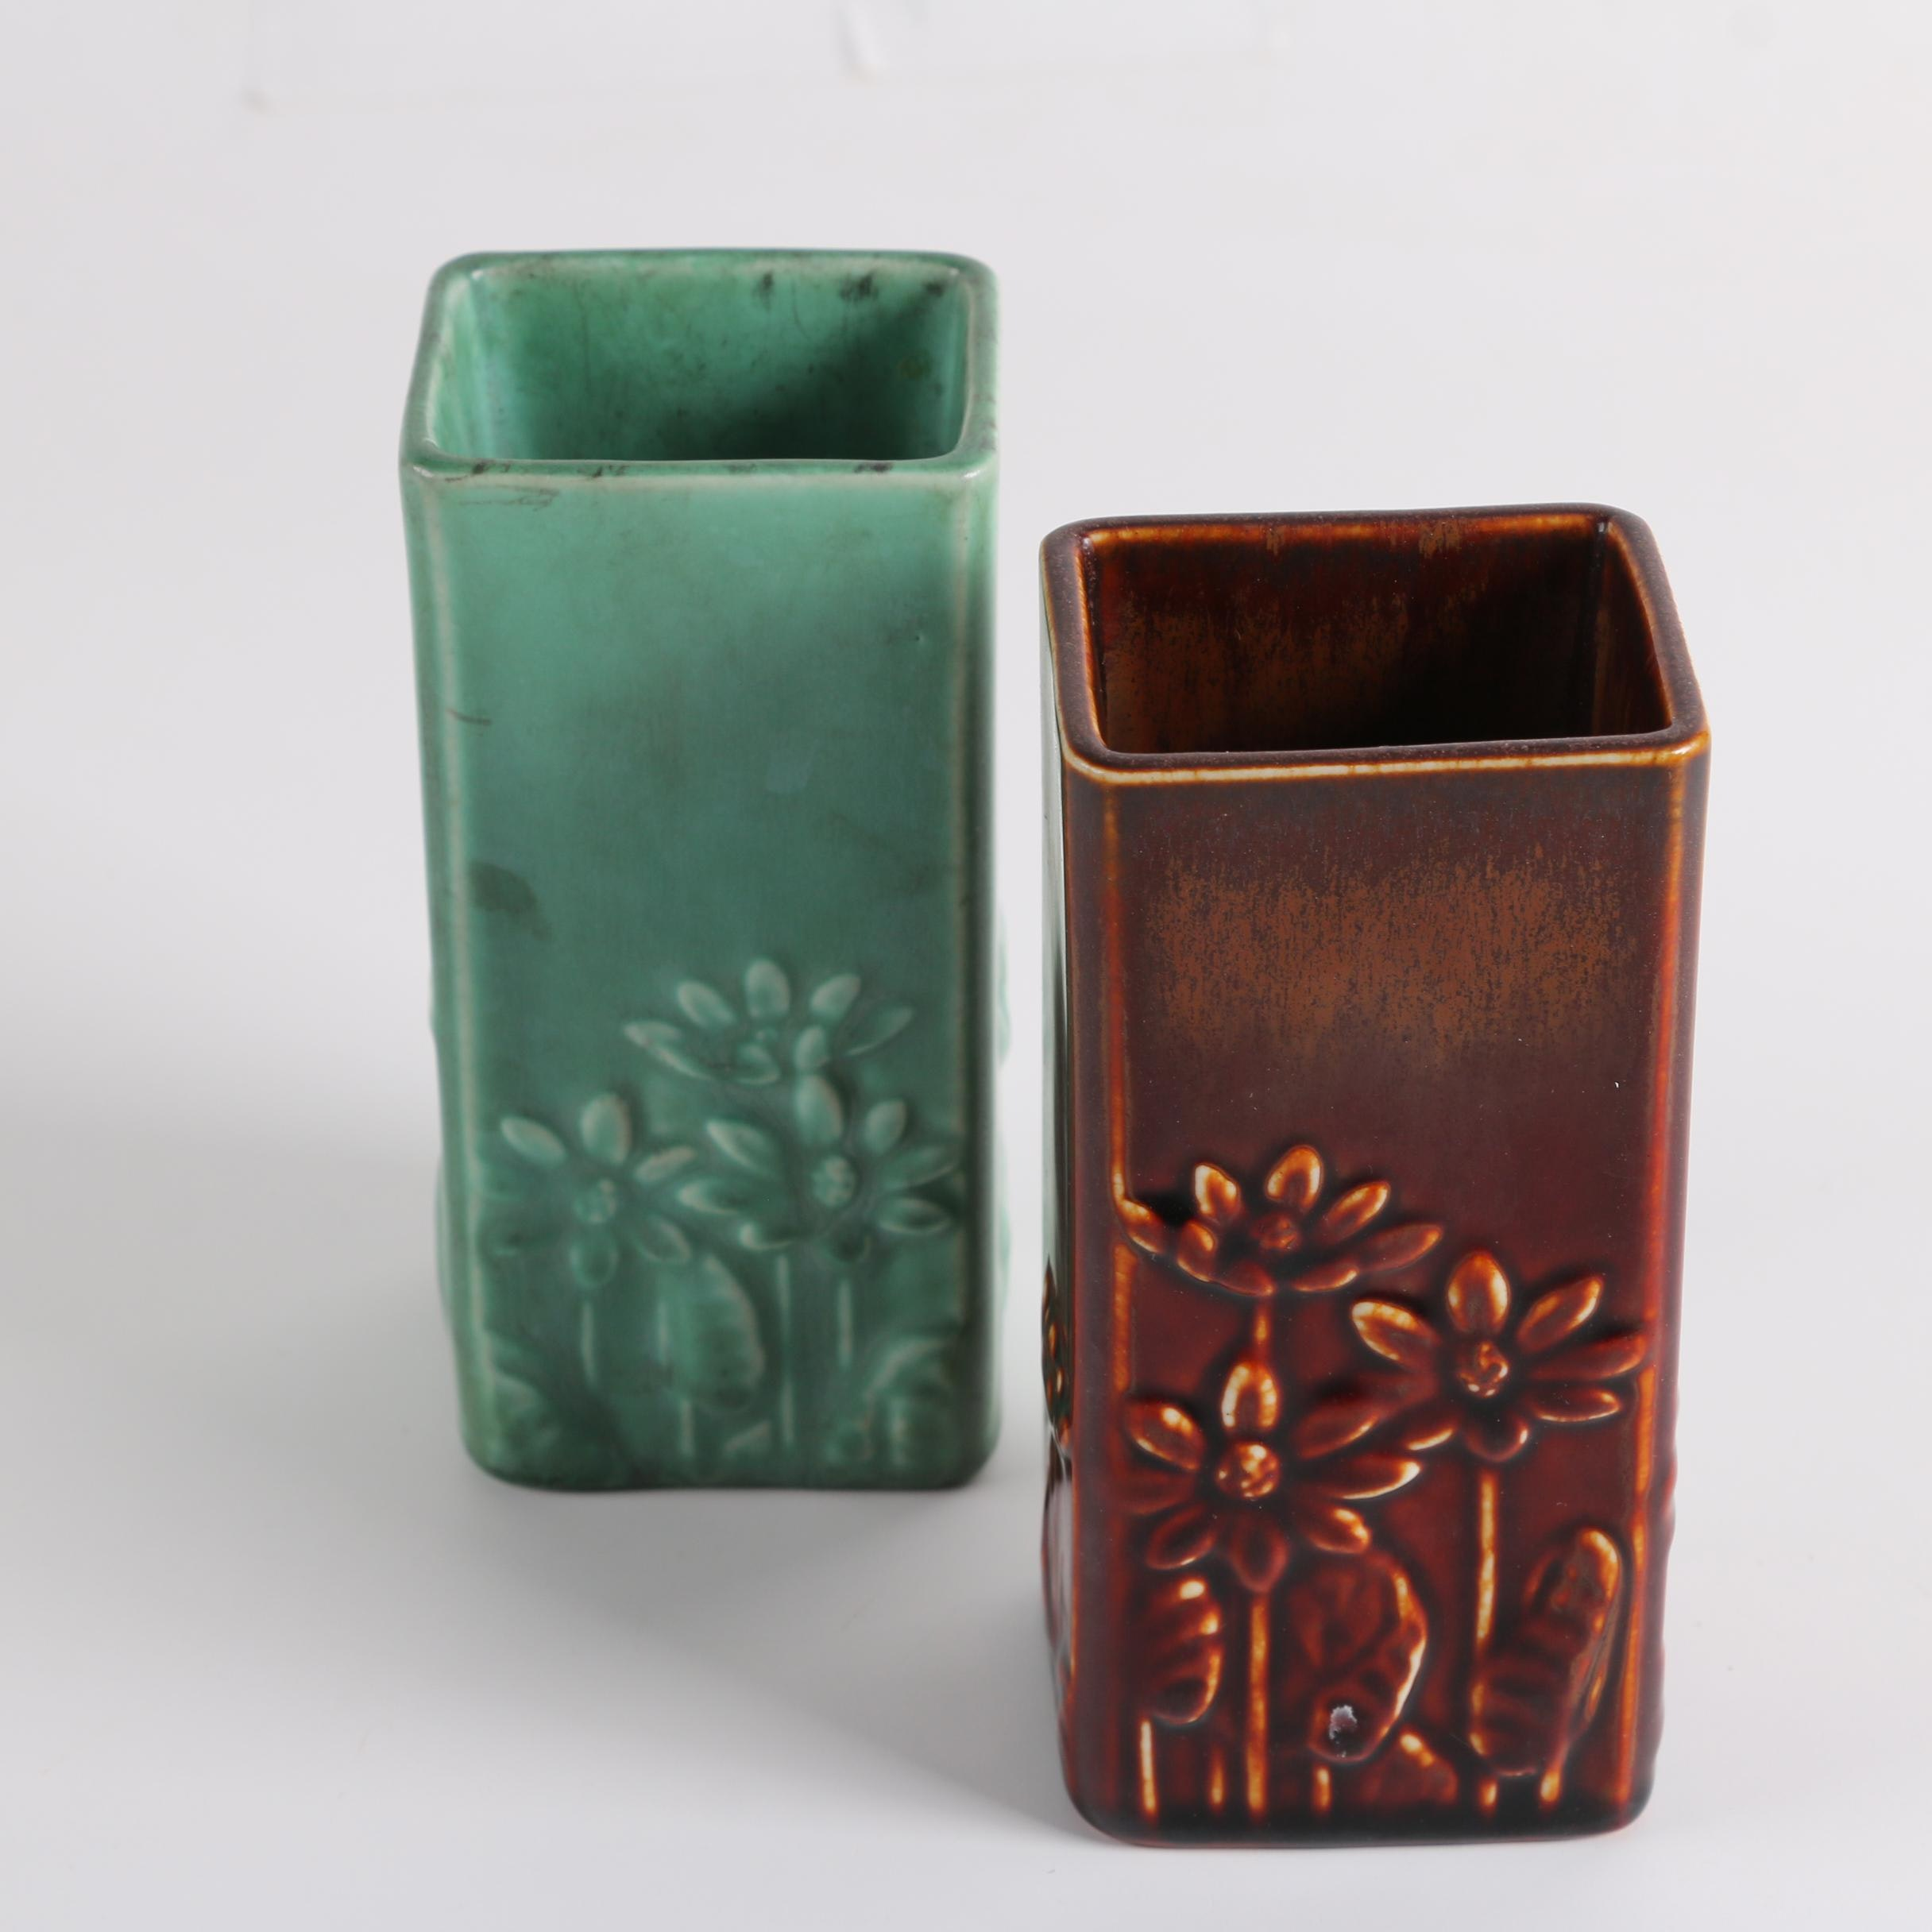 1937 Rookwood Pottery Vases